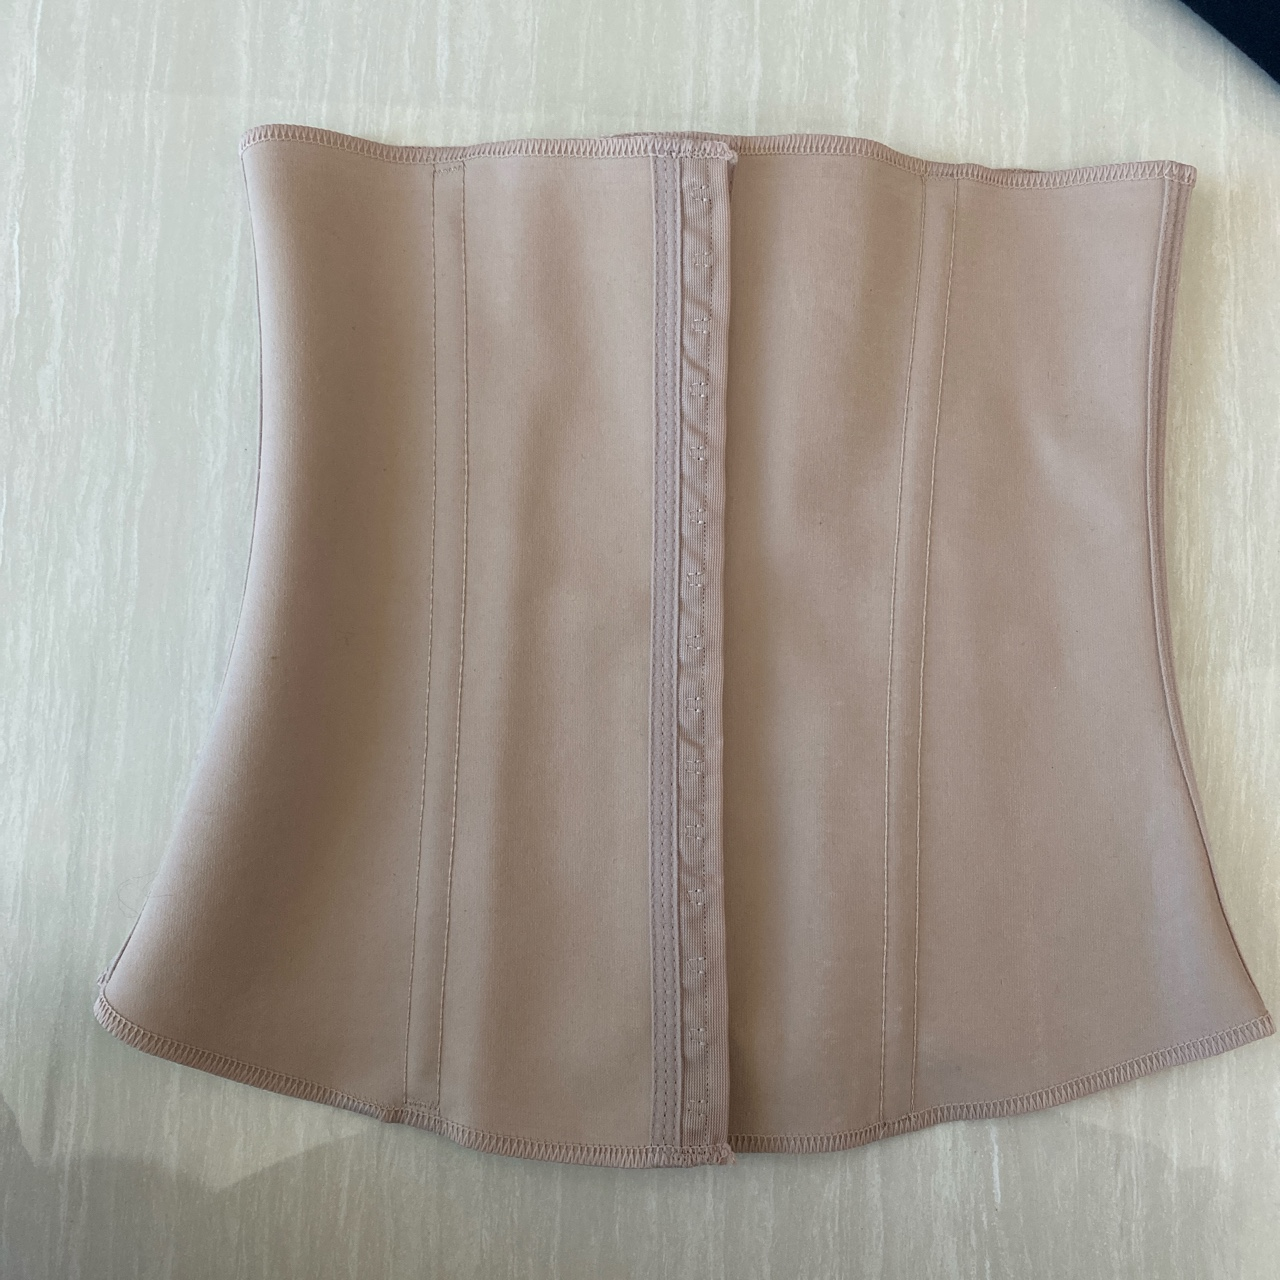 Product Image 1 - squeem corset in nude size medium selling